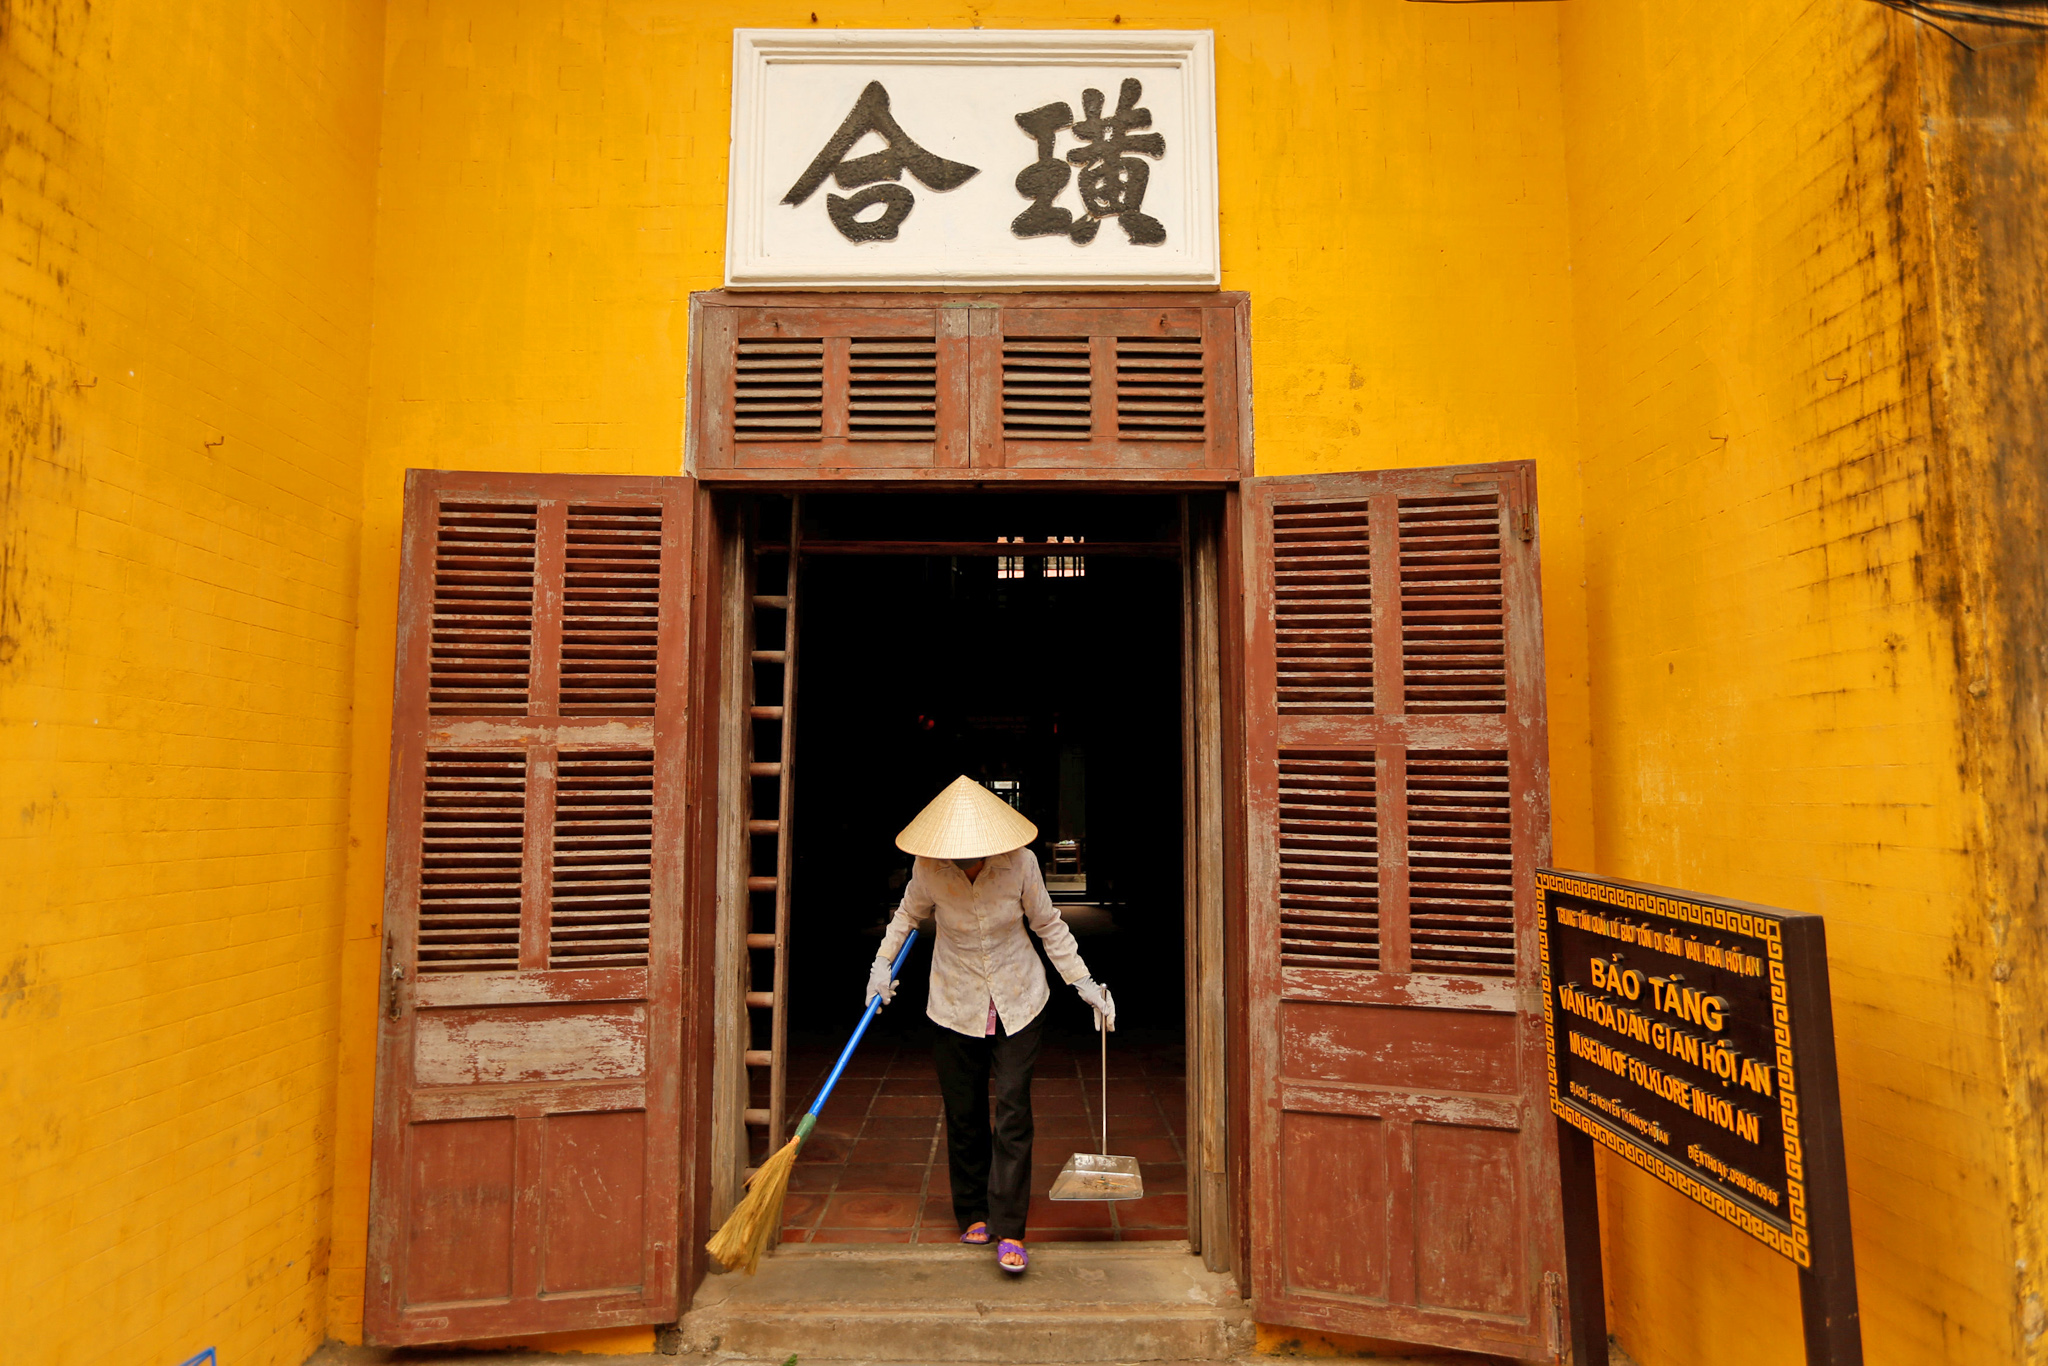 A woman wearing a traditional hat, known as a non la, sweeps an entrance of a museum in Hoi An, Vietnam April 5, 2016. The non la hats are made of readily available materials such as palm leaves, tree bark and bamboo and are visible everywhere in the city, a UNESCO World Heritage site. Hoi An's history as a busy trading port is evident throughout its architecture, a mix of eras and styles, with traditional wooden Vietnamese houses, Chinese temples and French colonial buildings